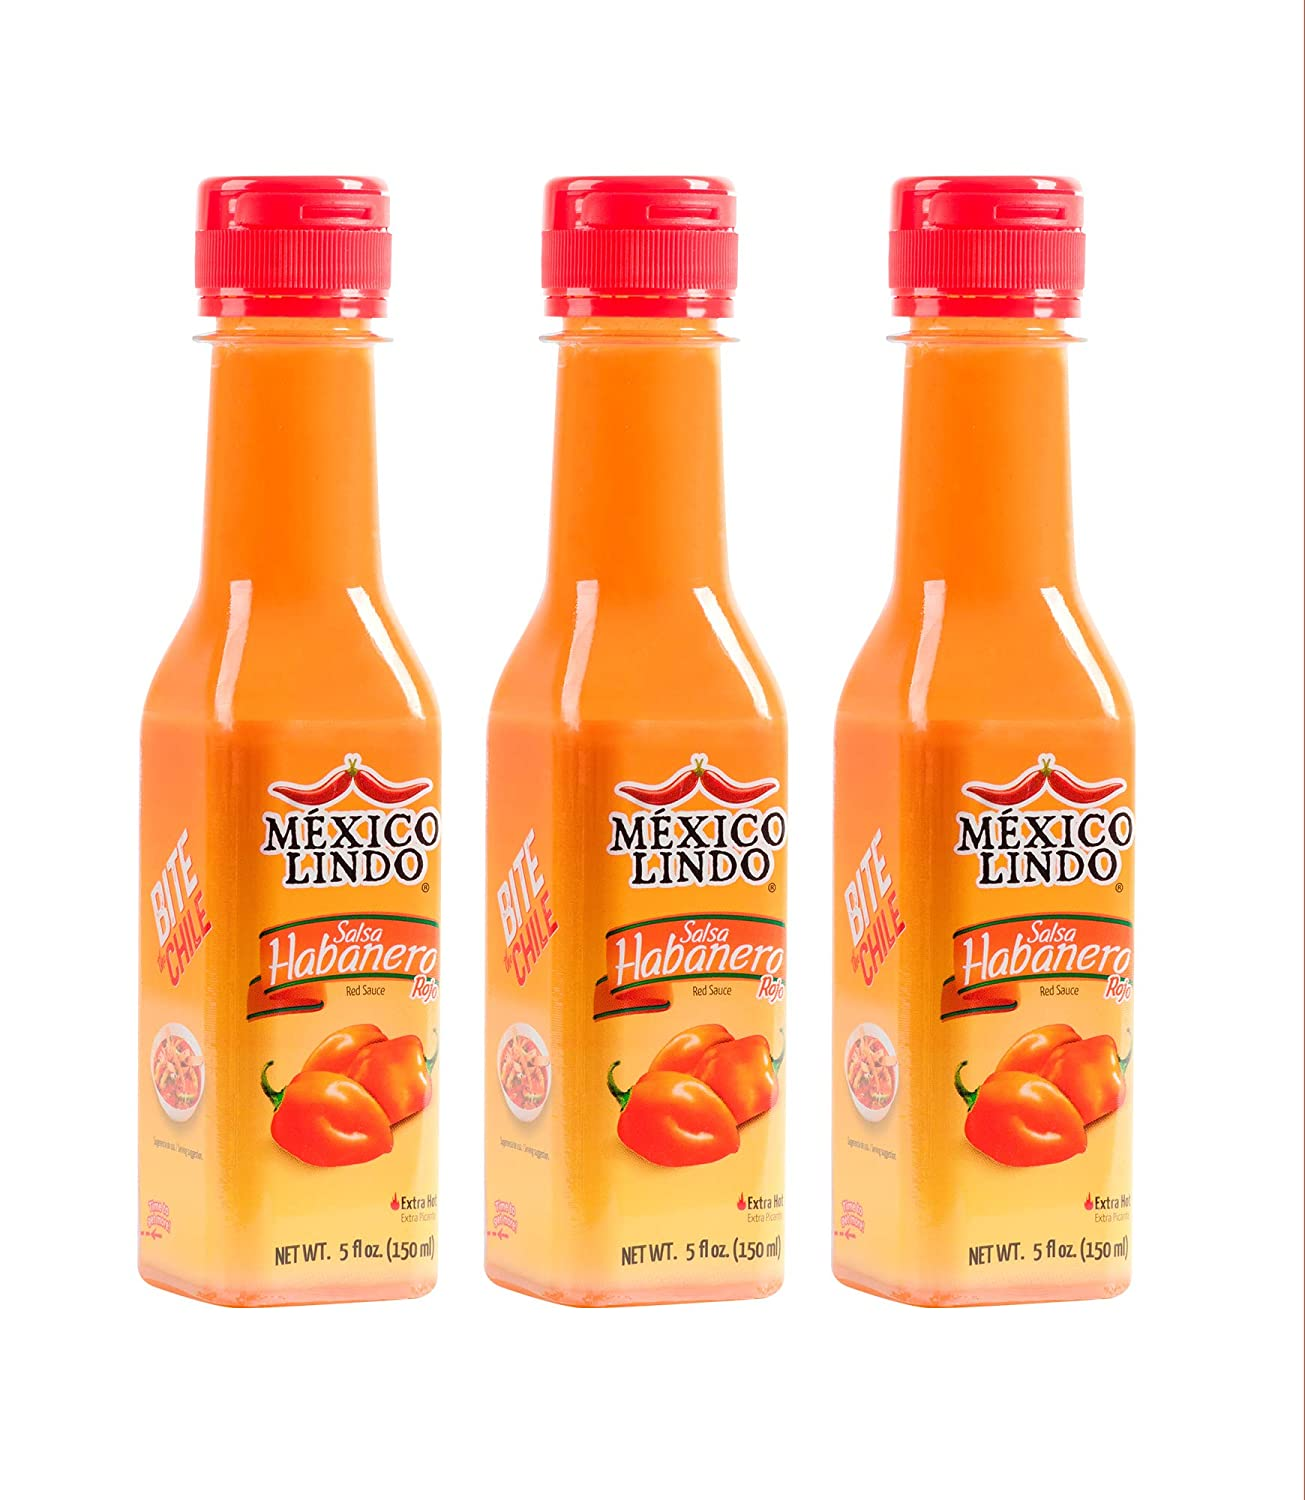 Mexico Lindo Red Habanero Hot Sauce | Real Red Habanero Chili Pepper | 78,200 Scoville Level | Enjoy with Mexican Food, Seafood & Pasta | 5 Fl Oz Bottles (Pack of 3)